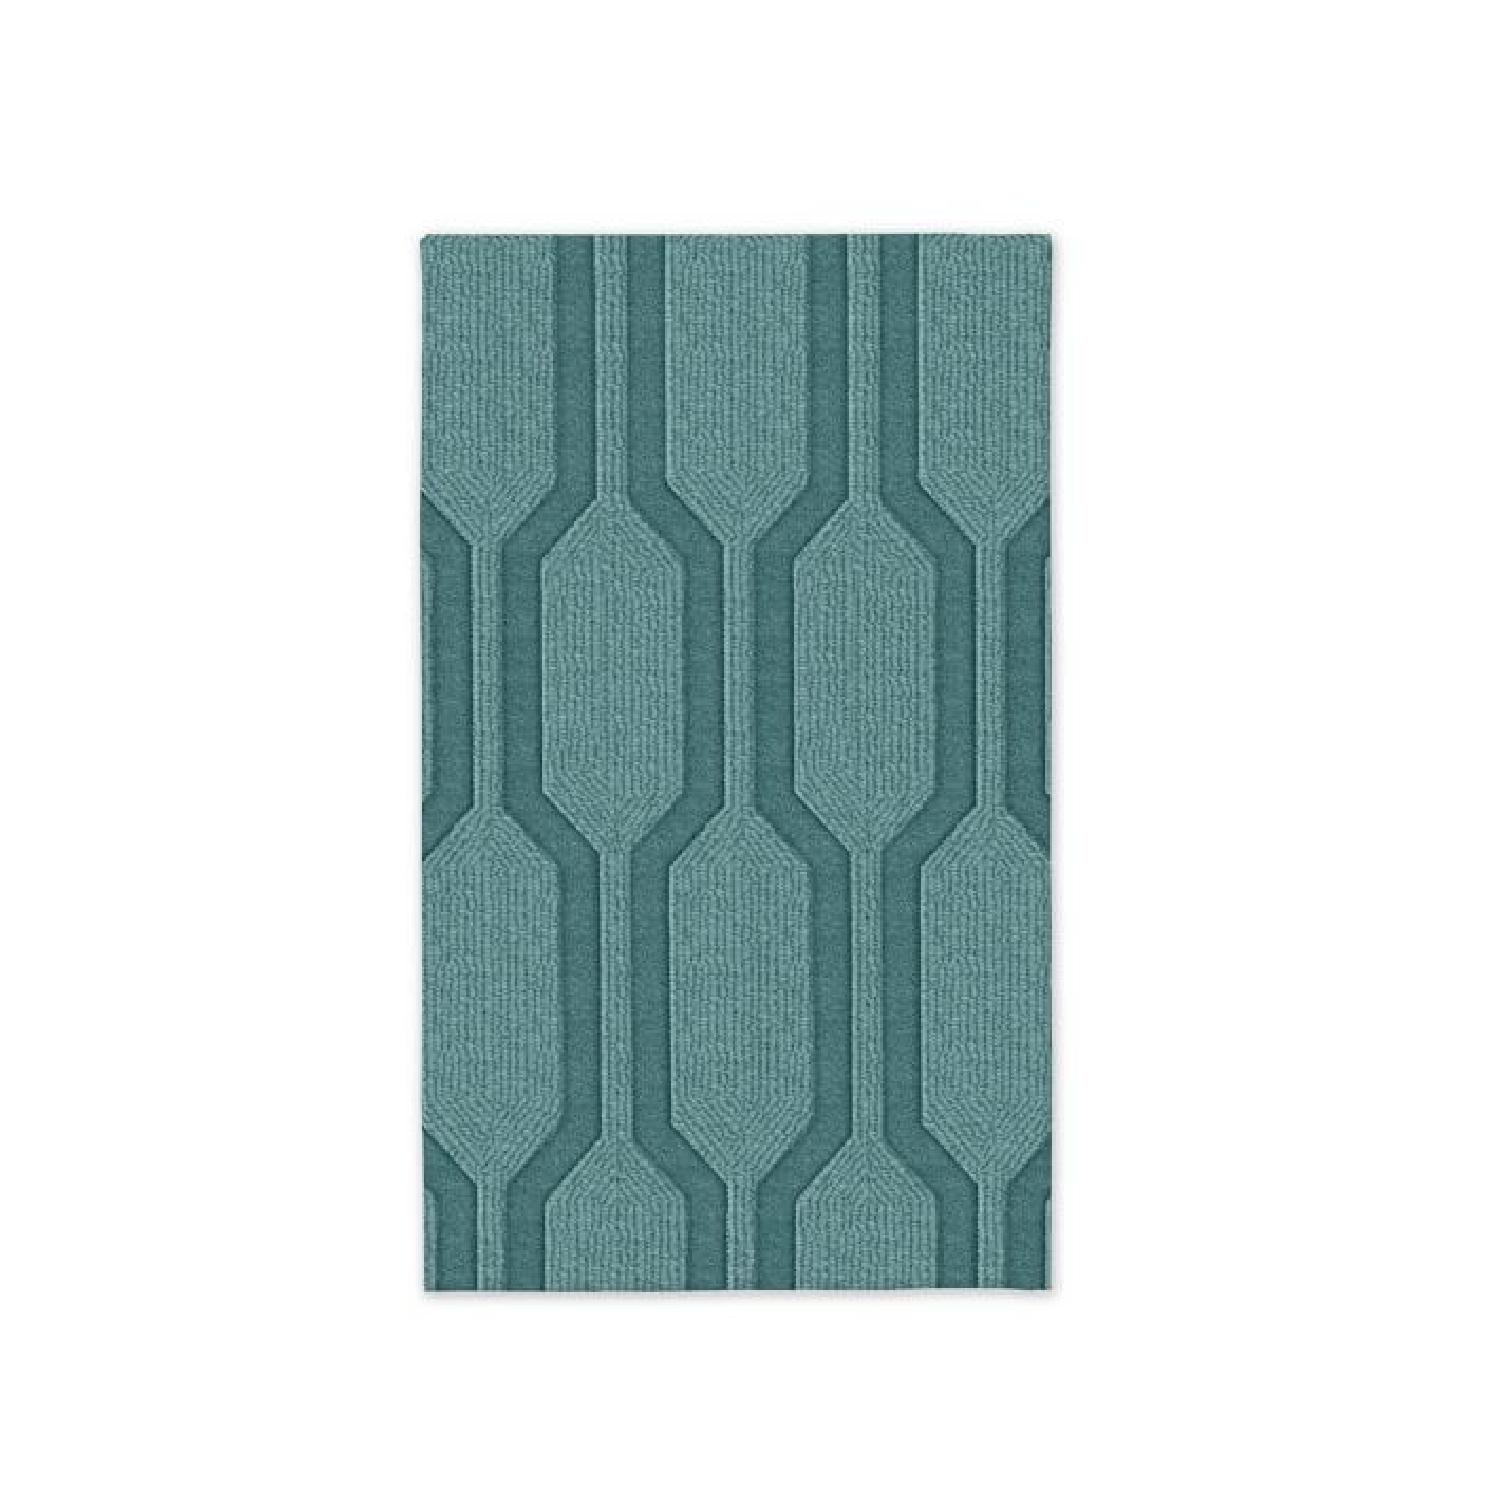 West Elm SPO Honeycomb Textured Rug-0